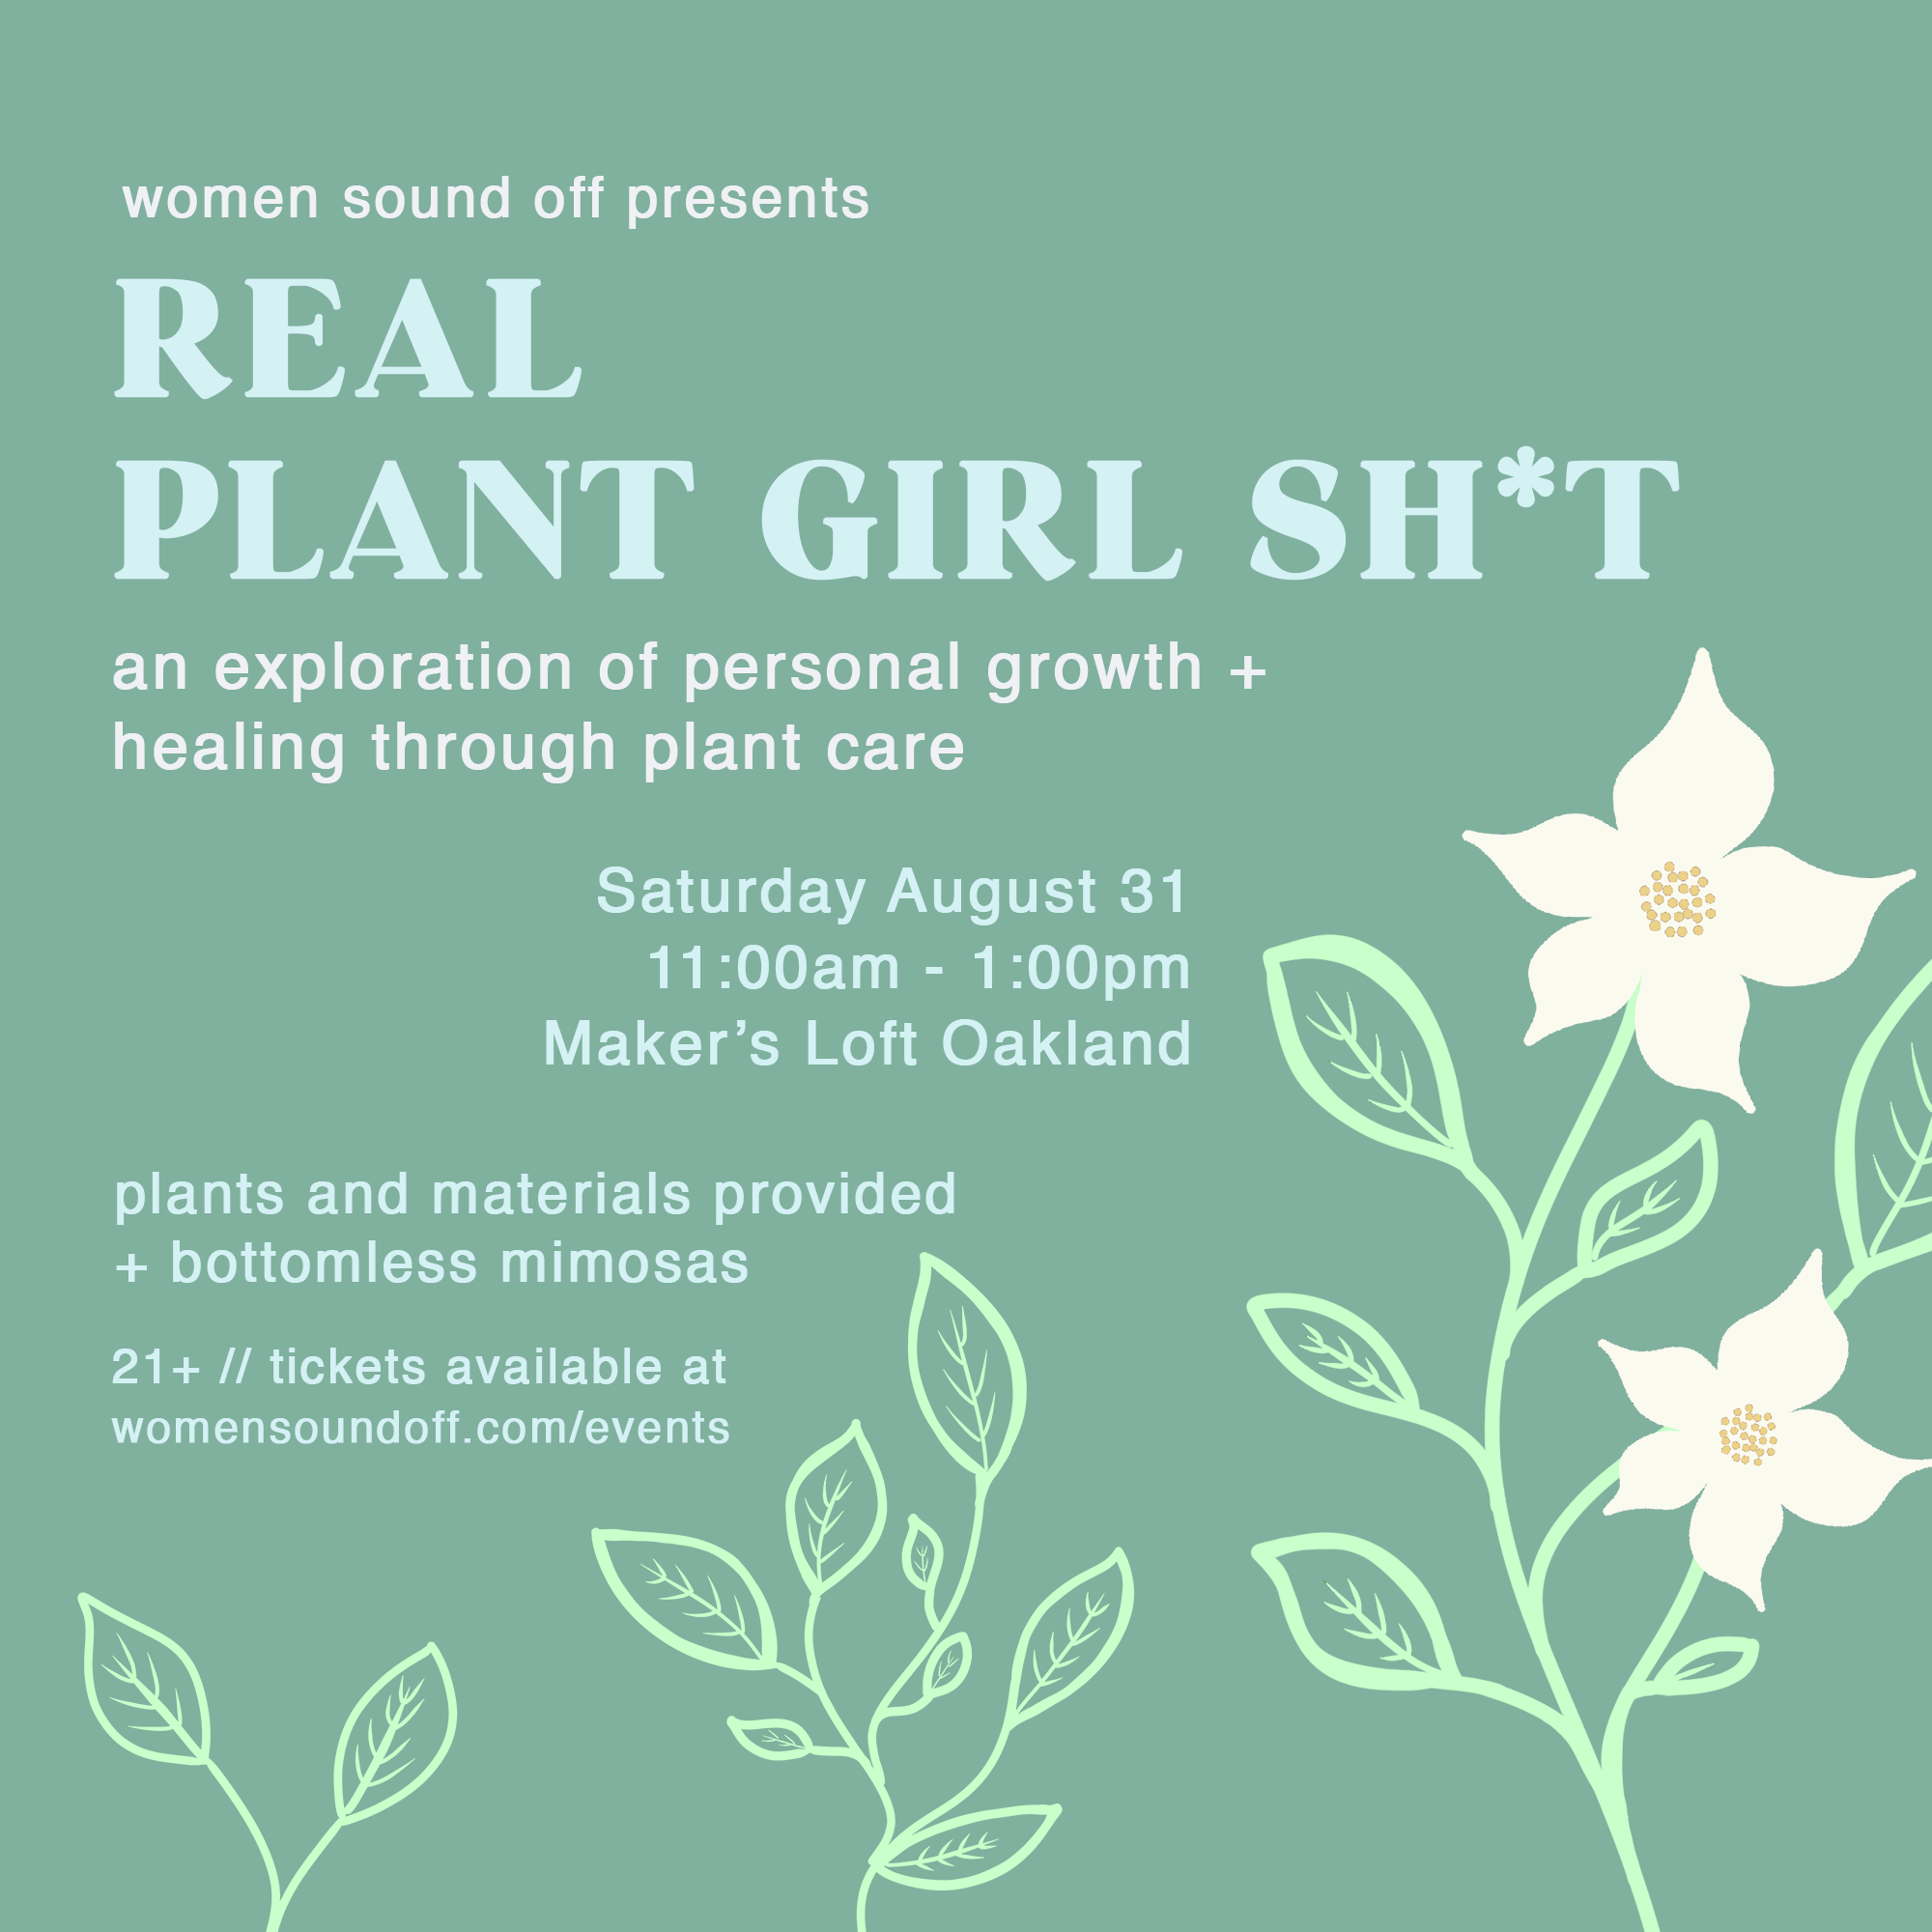 WSO Presents: Real Plant Girl Sh*t